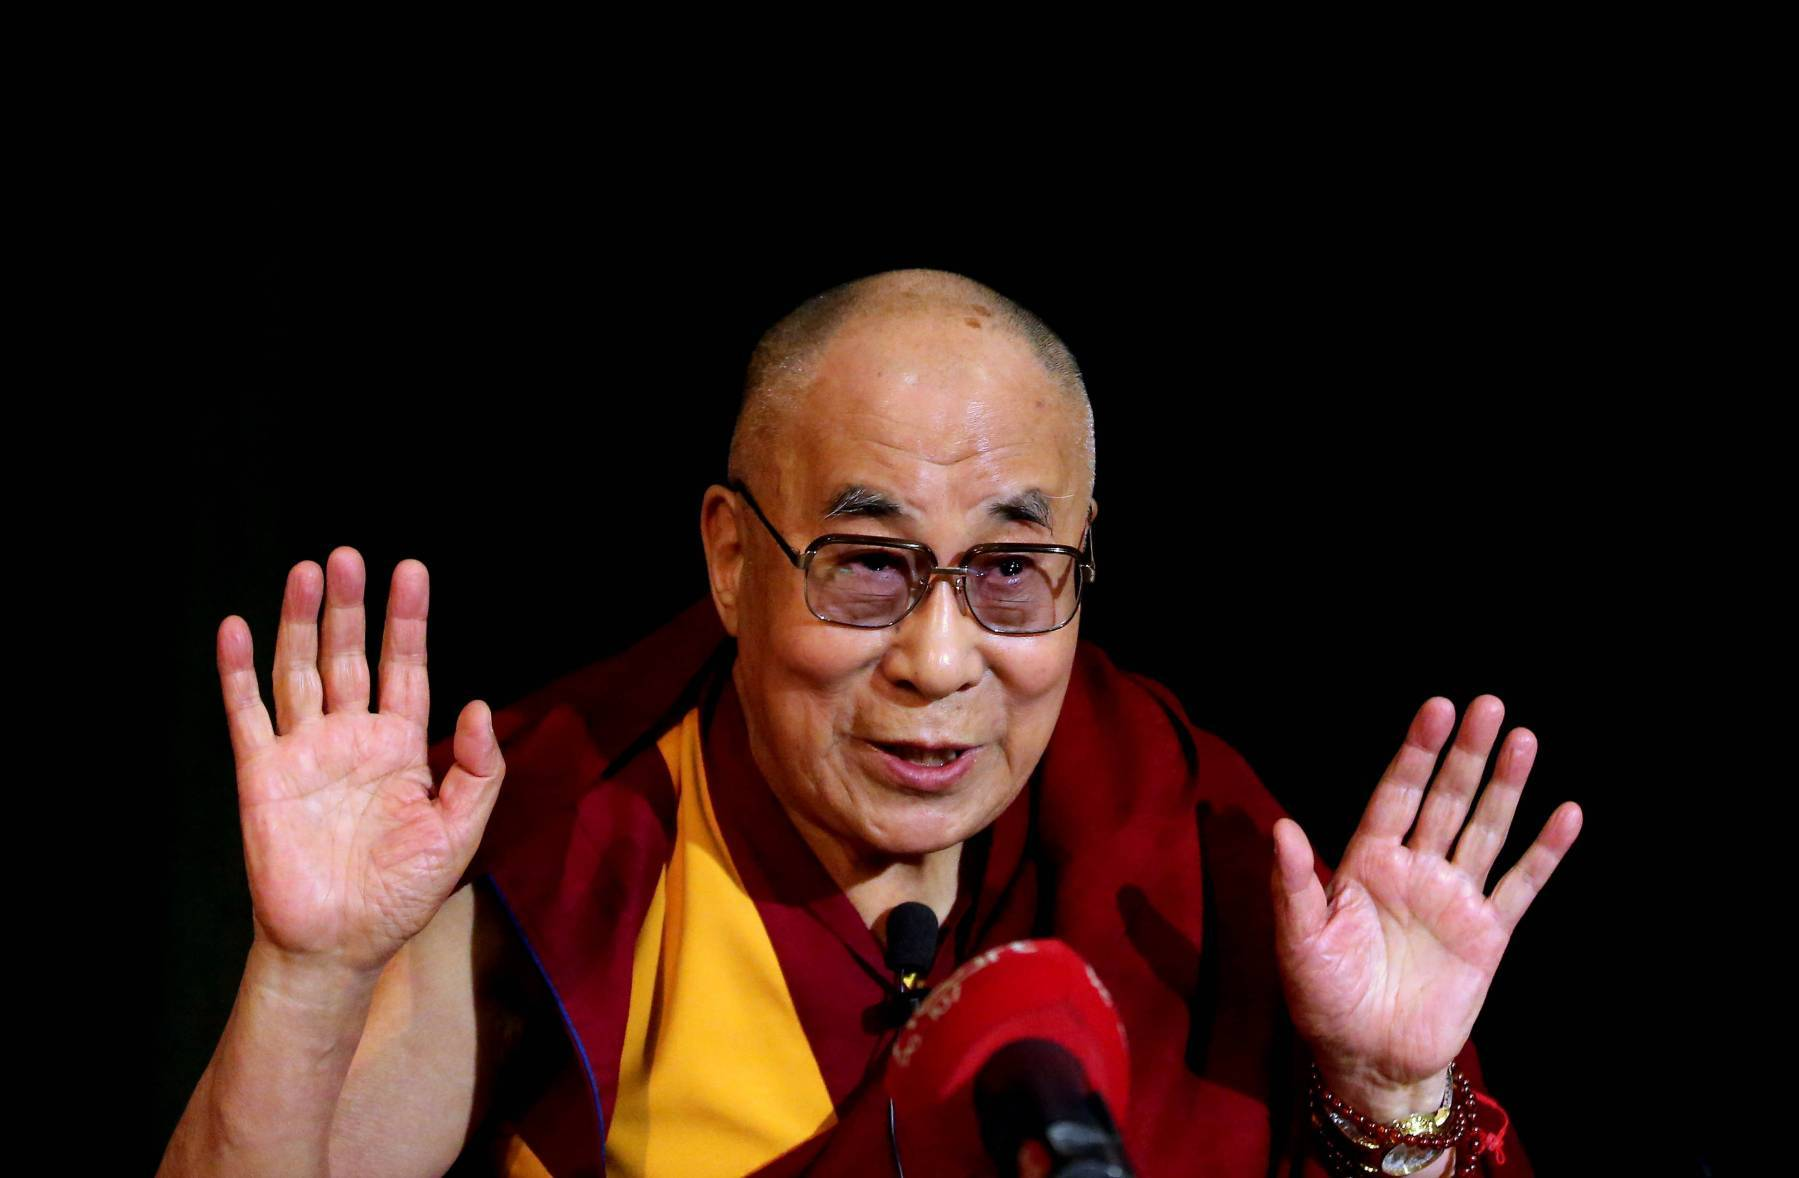 The Dalai Lama speaks during a press conference at Magdalen College, Oxford University, at the start of a 10-day UK visit.